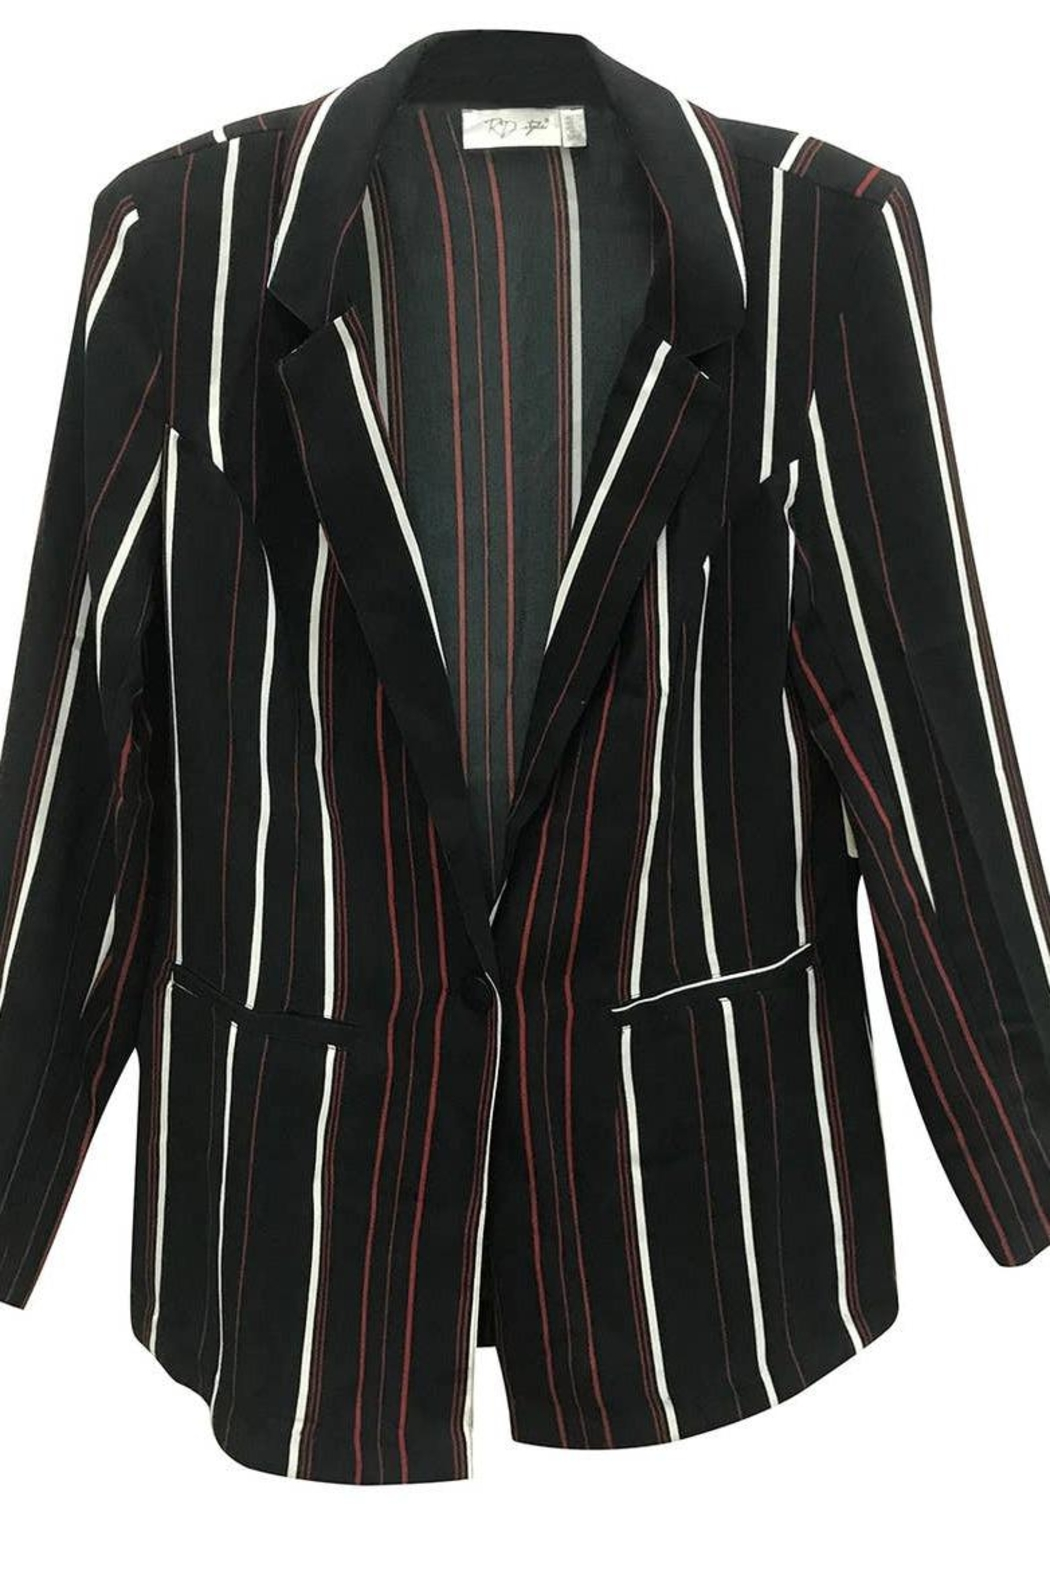 RD Style Striped Blouse - Main Image